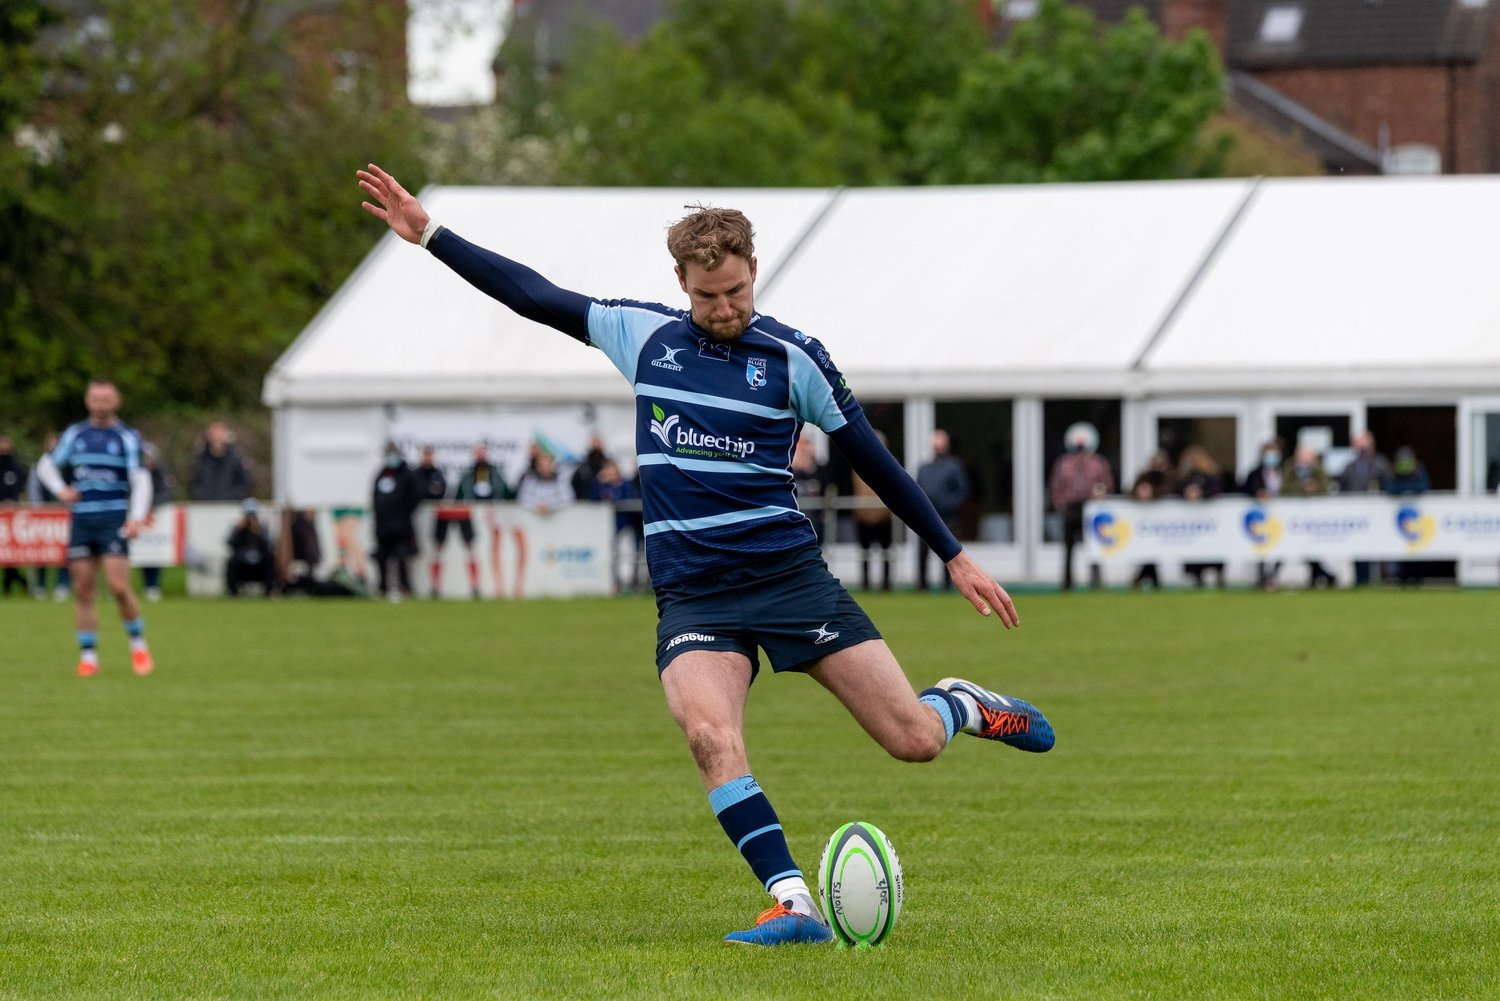 Will Maisey kicks a penalty for Bedford Blues